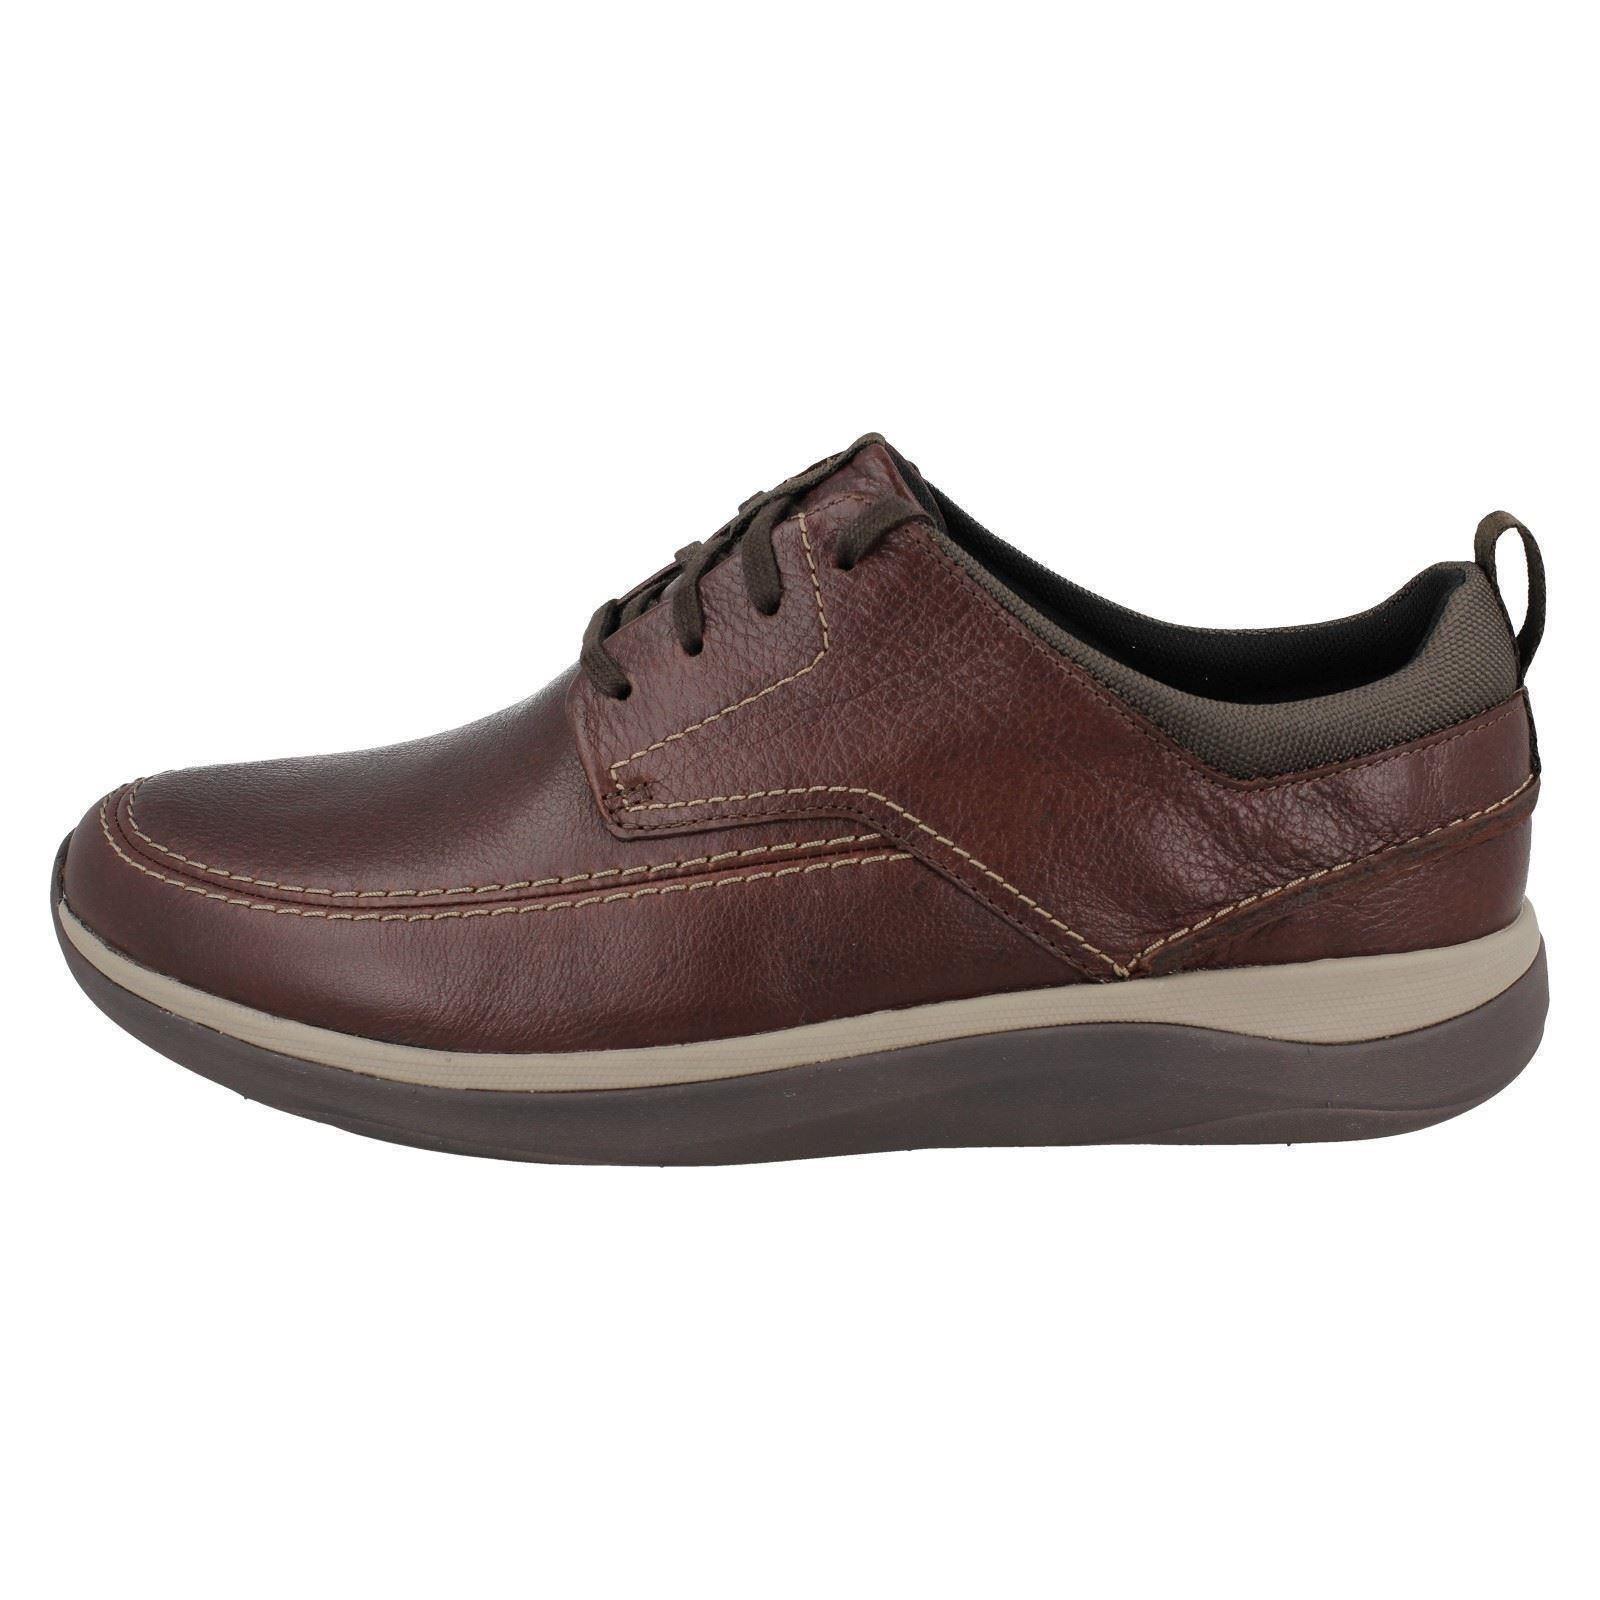 Mens-Unstructured-by-Clarks-Lace-Up-Shoes-039-Garratt-Street-039 thumbnail 19